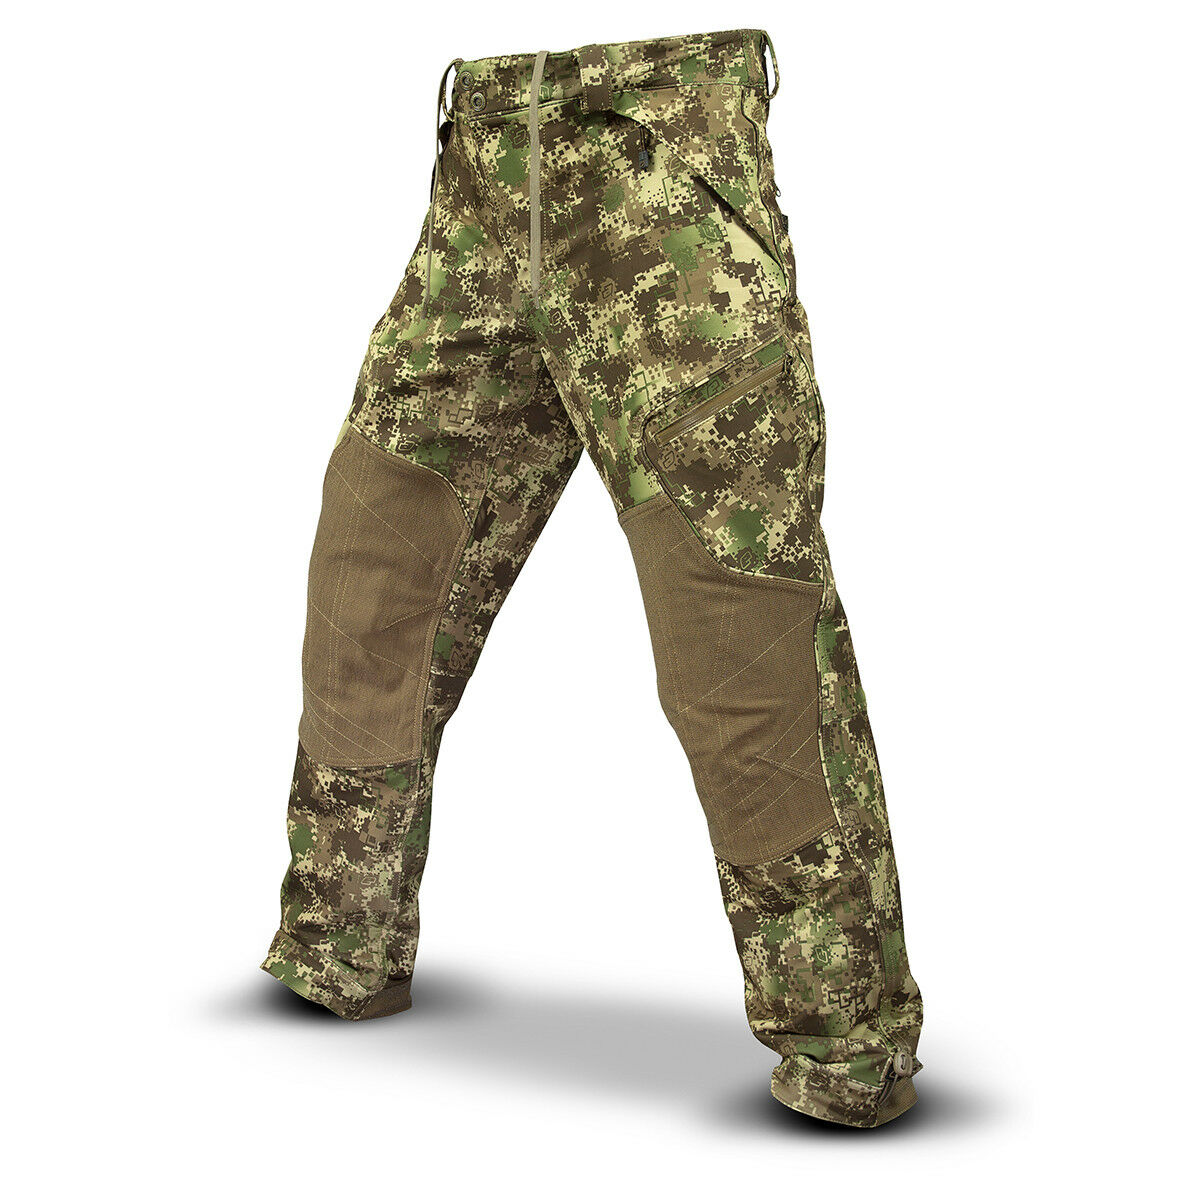 Planet Eclipse Elite Pants - HDE Cam - Medium